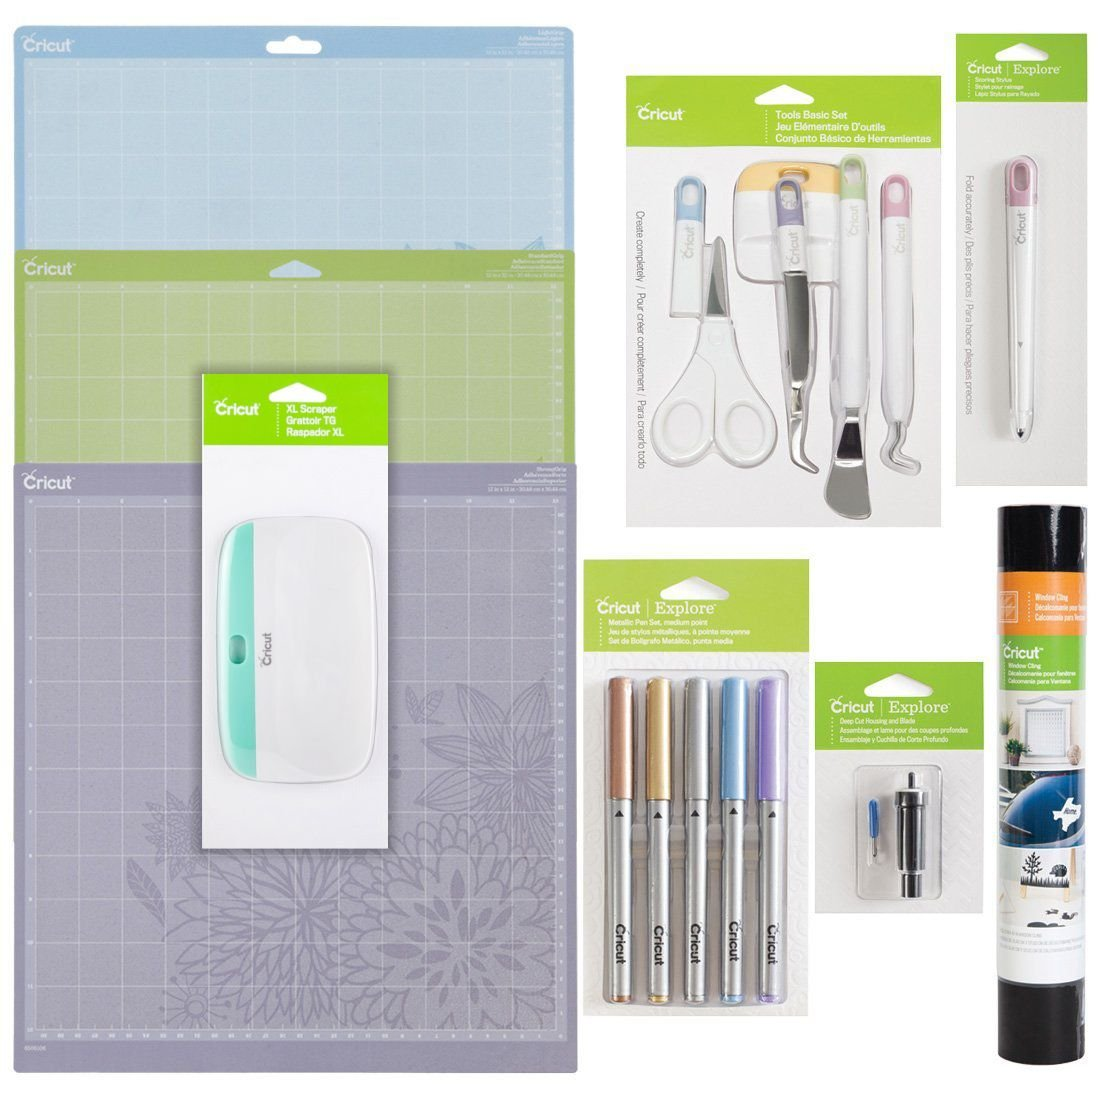 Provo Craft Cricut Explore Complete Starter Set and Cricut XL Scraper